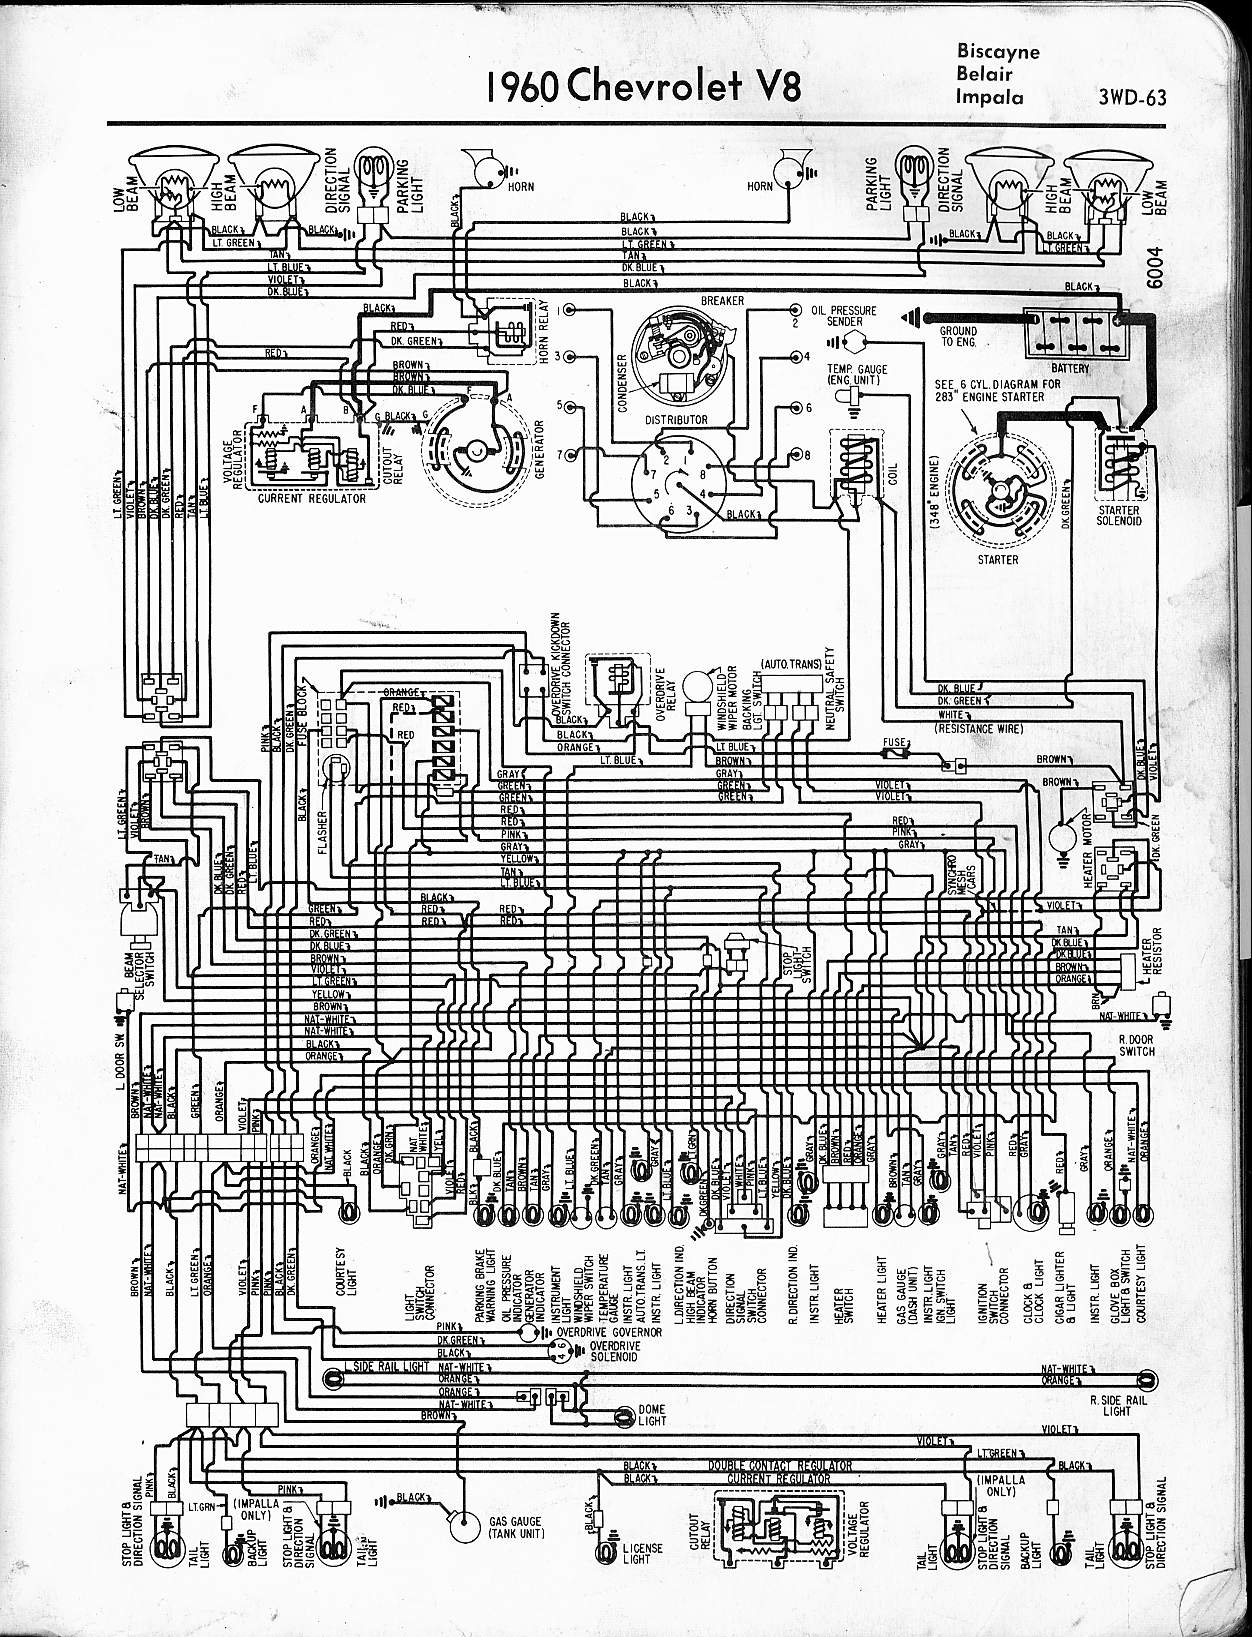 2006 chevy impala wiring diagram Download-2005 chevy impala wiring diagram 18-n